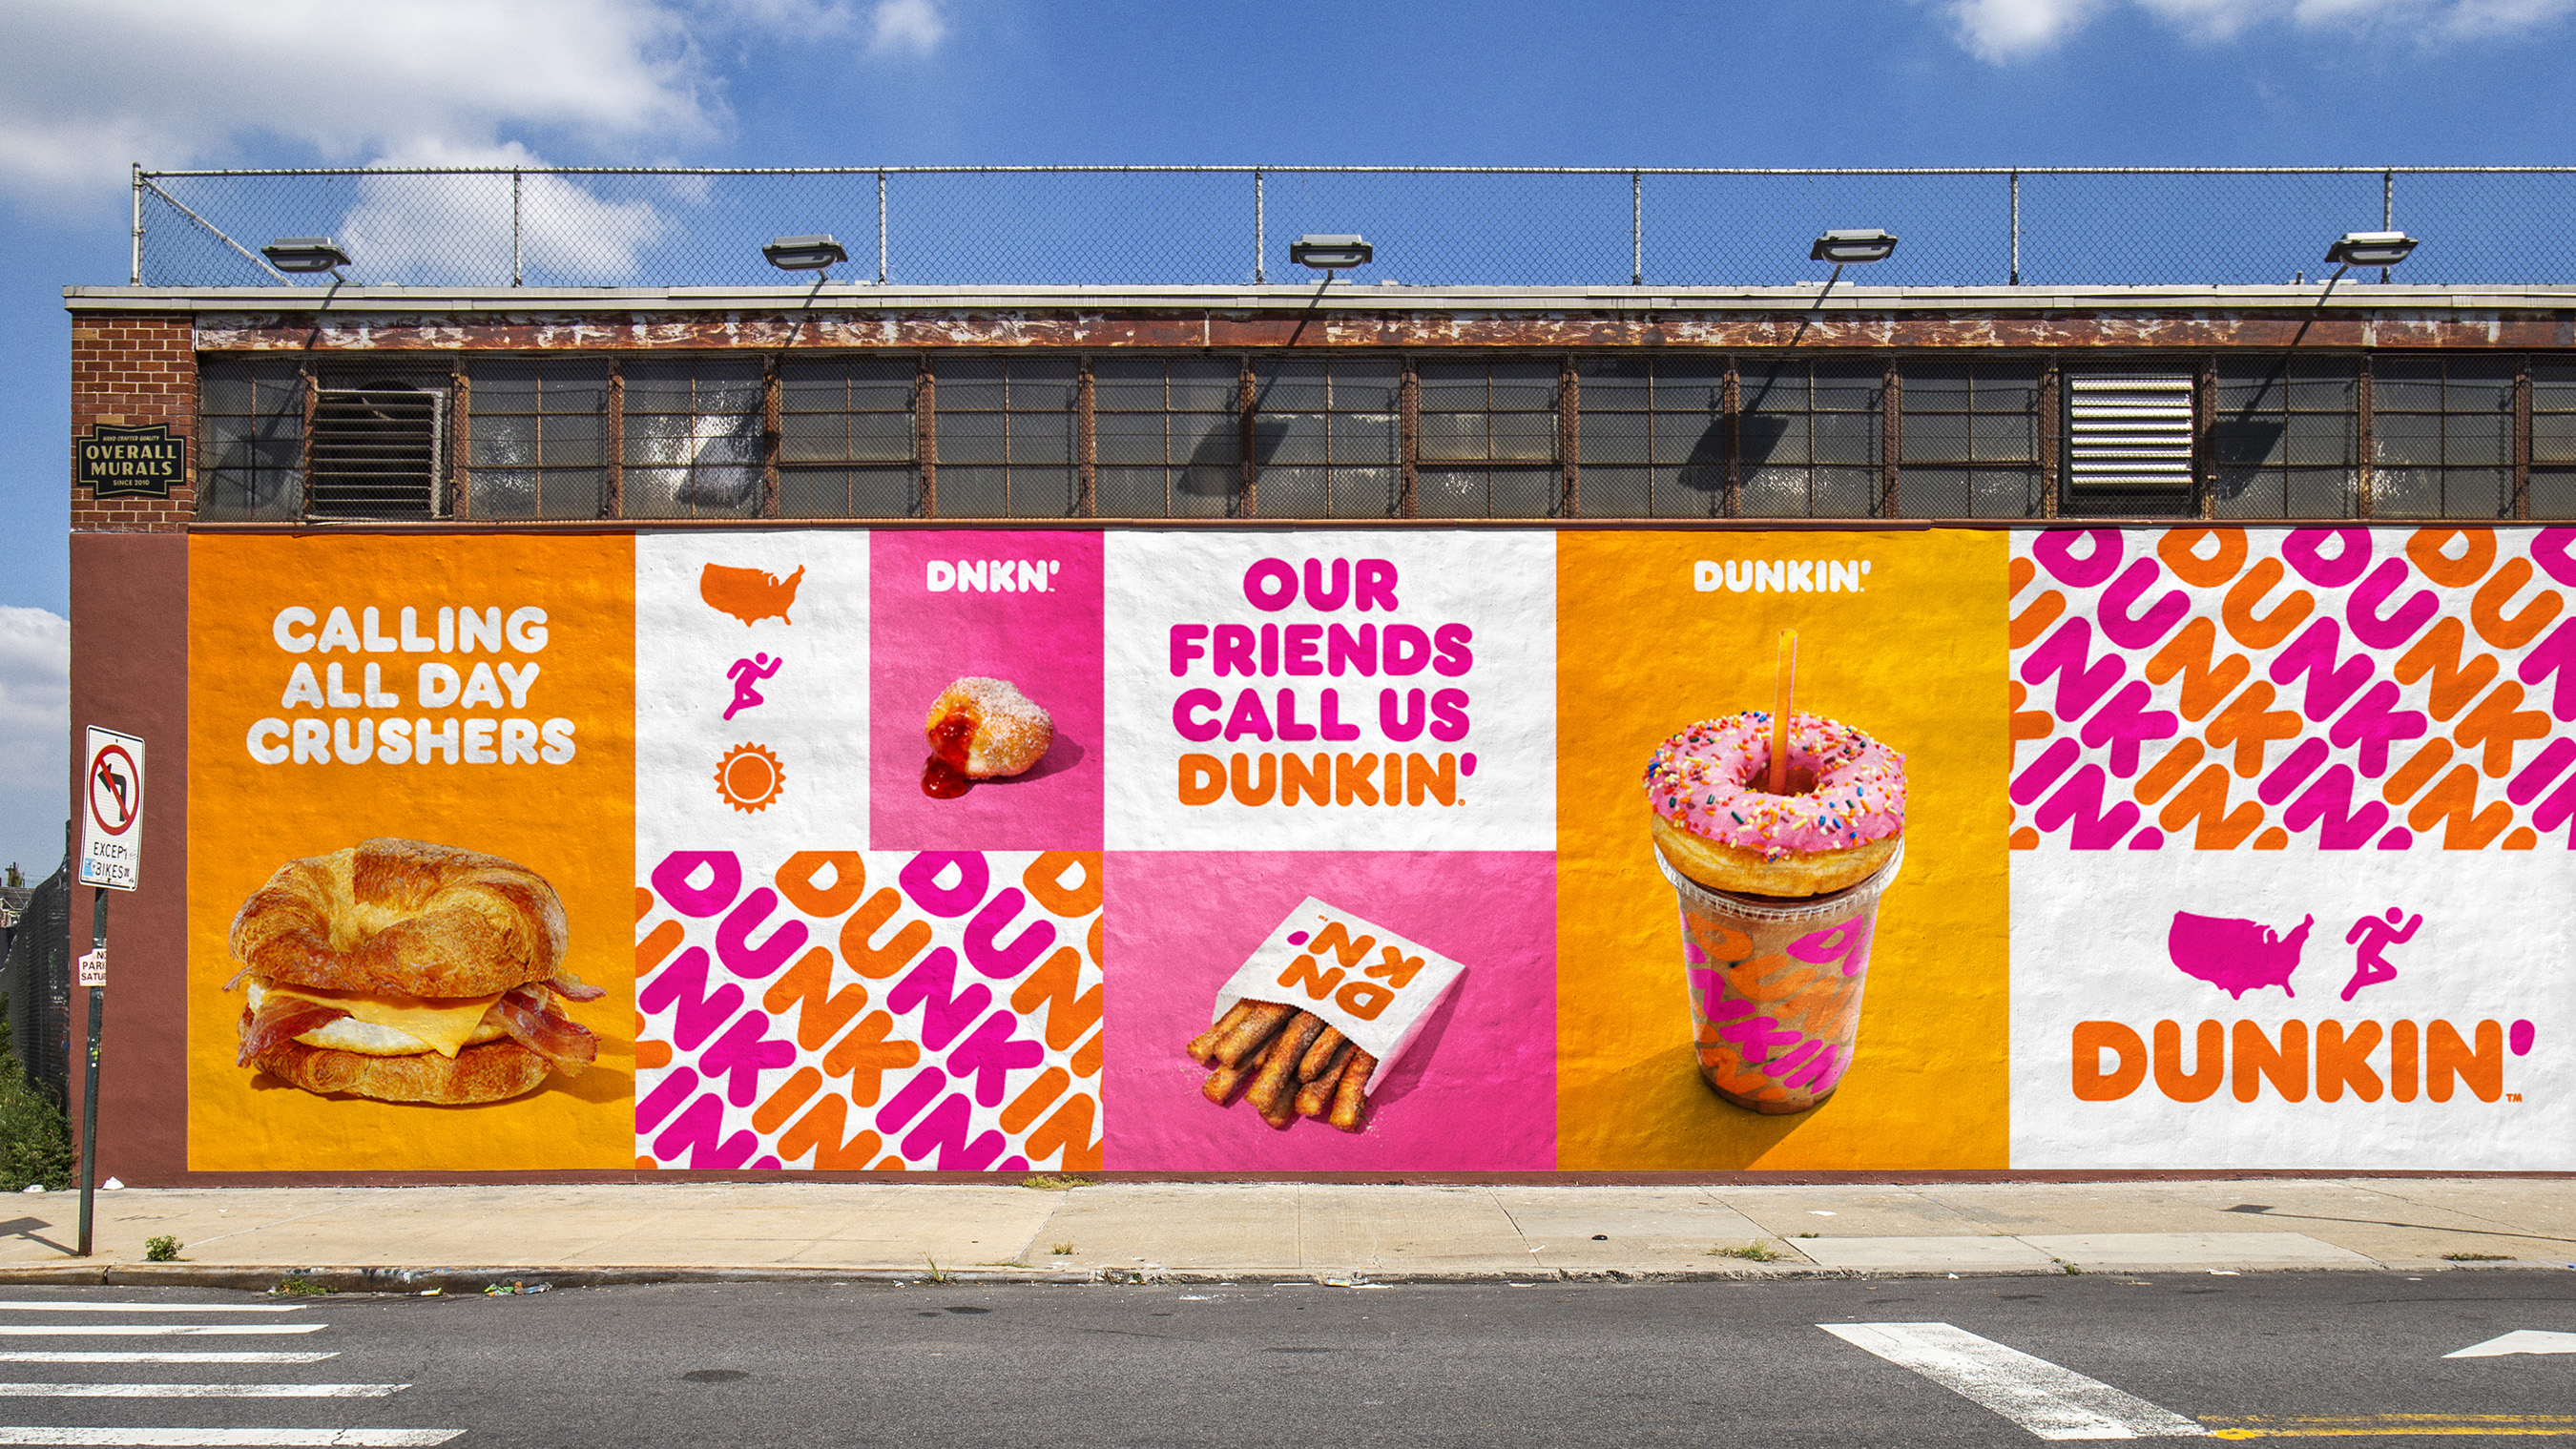 Examples of Dunkin' new branding